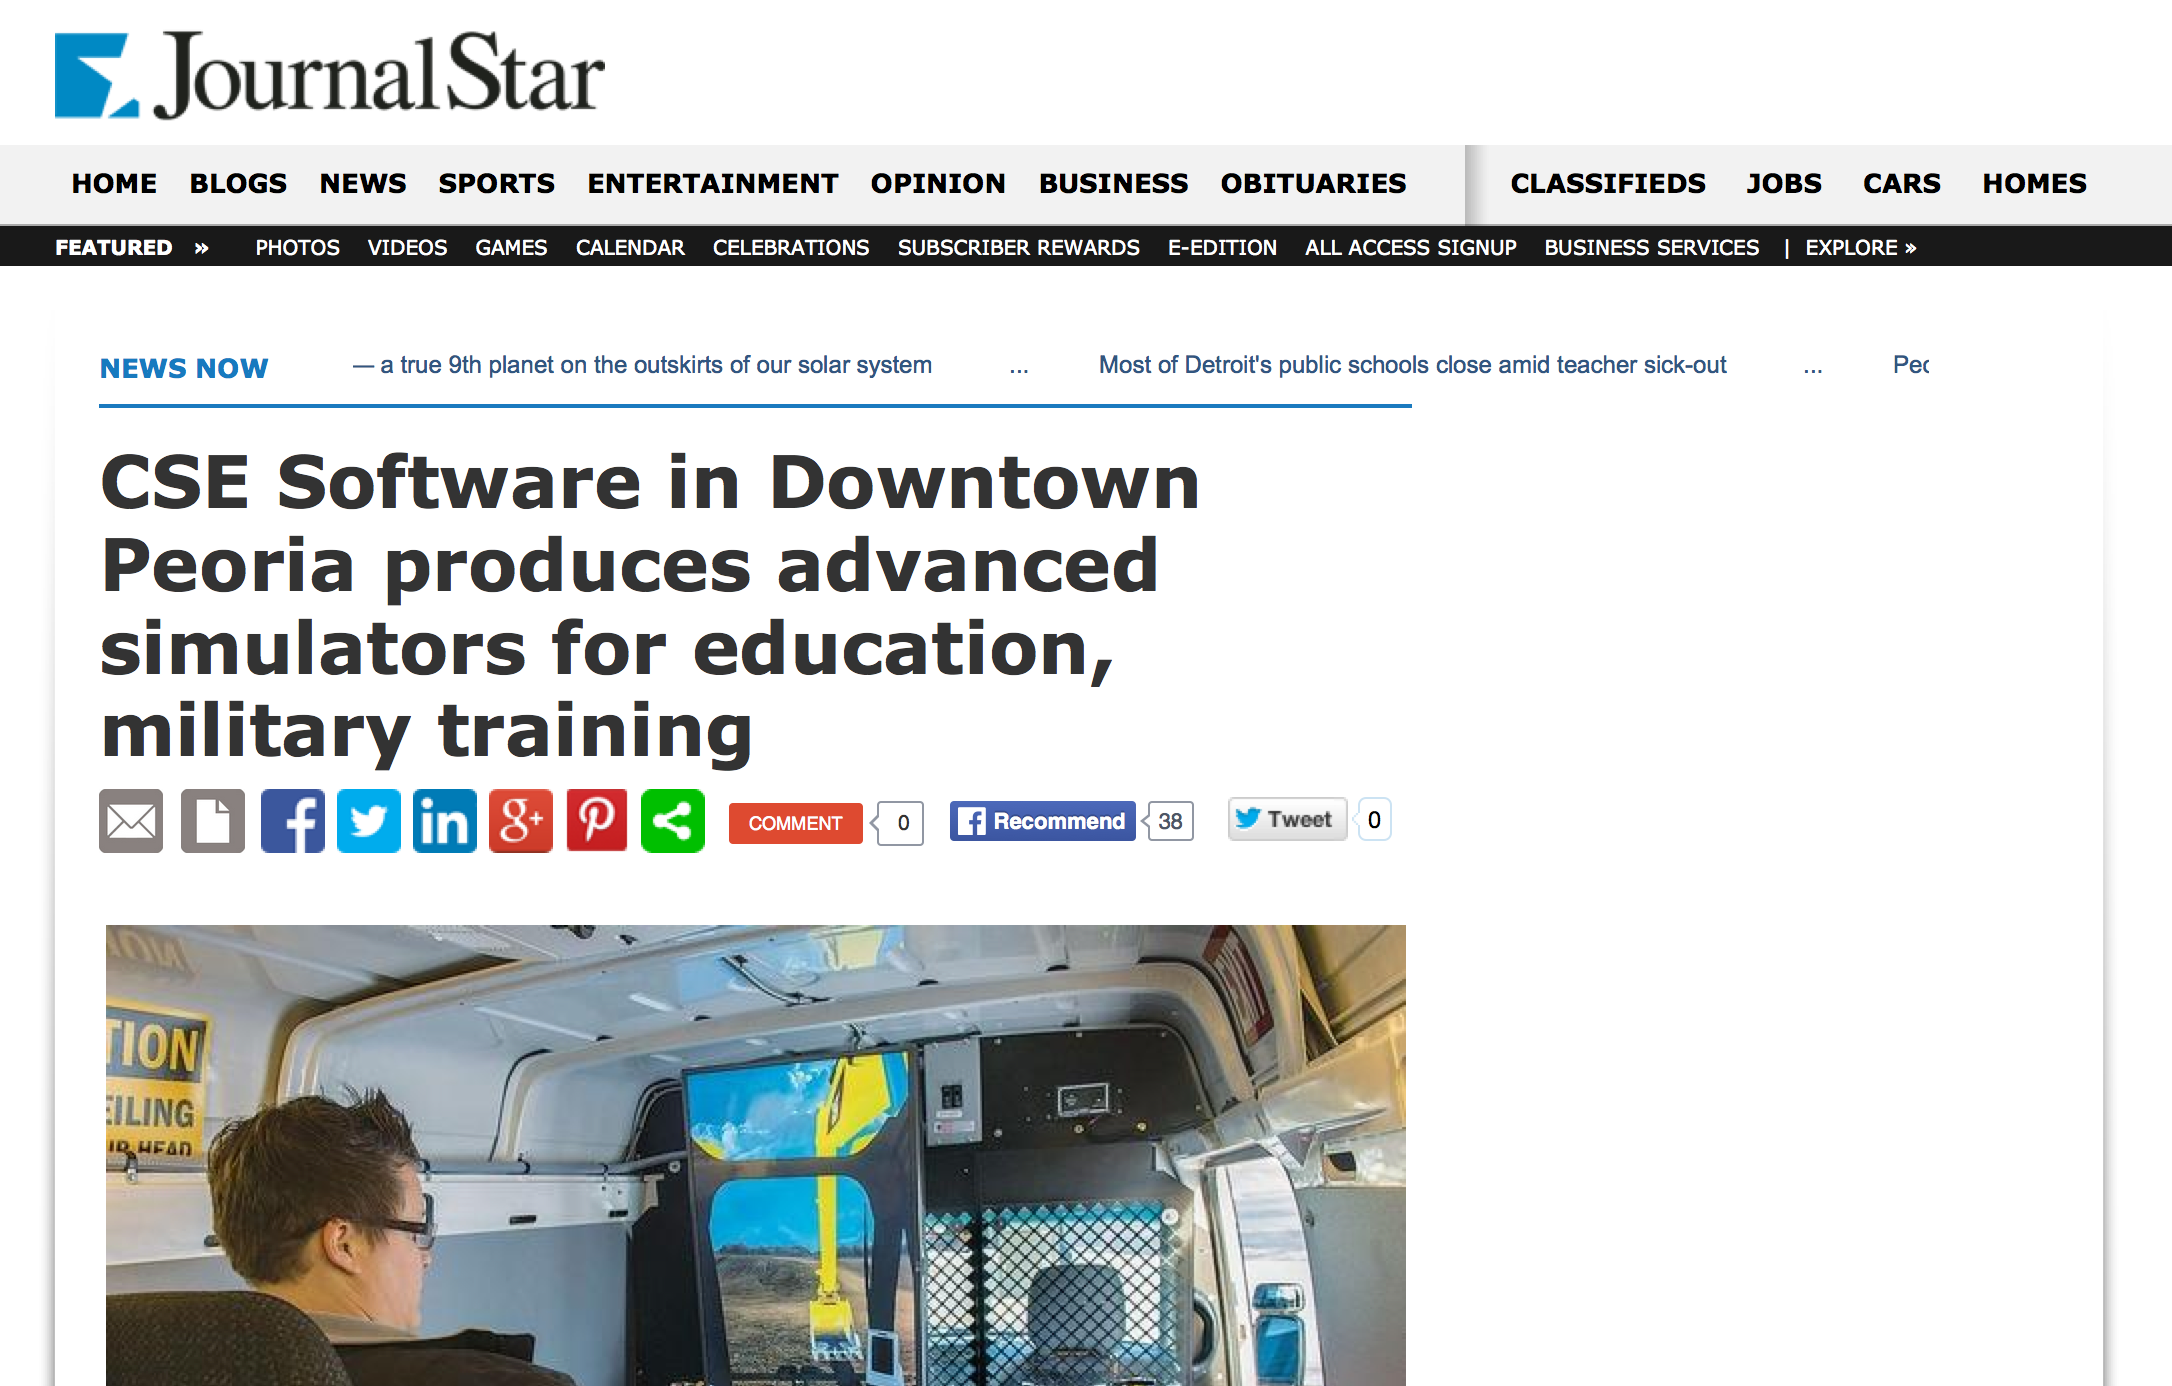 CSE Software's simulation development is in the news!